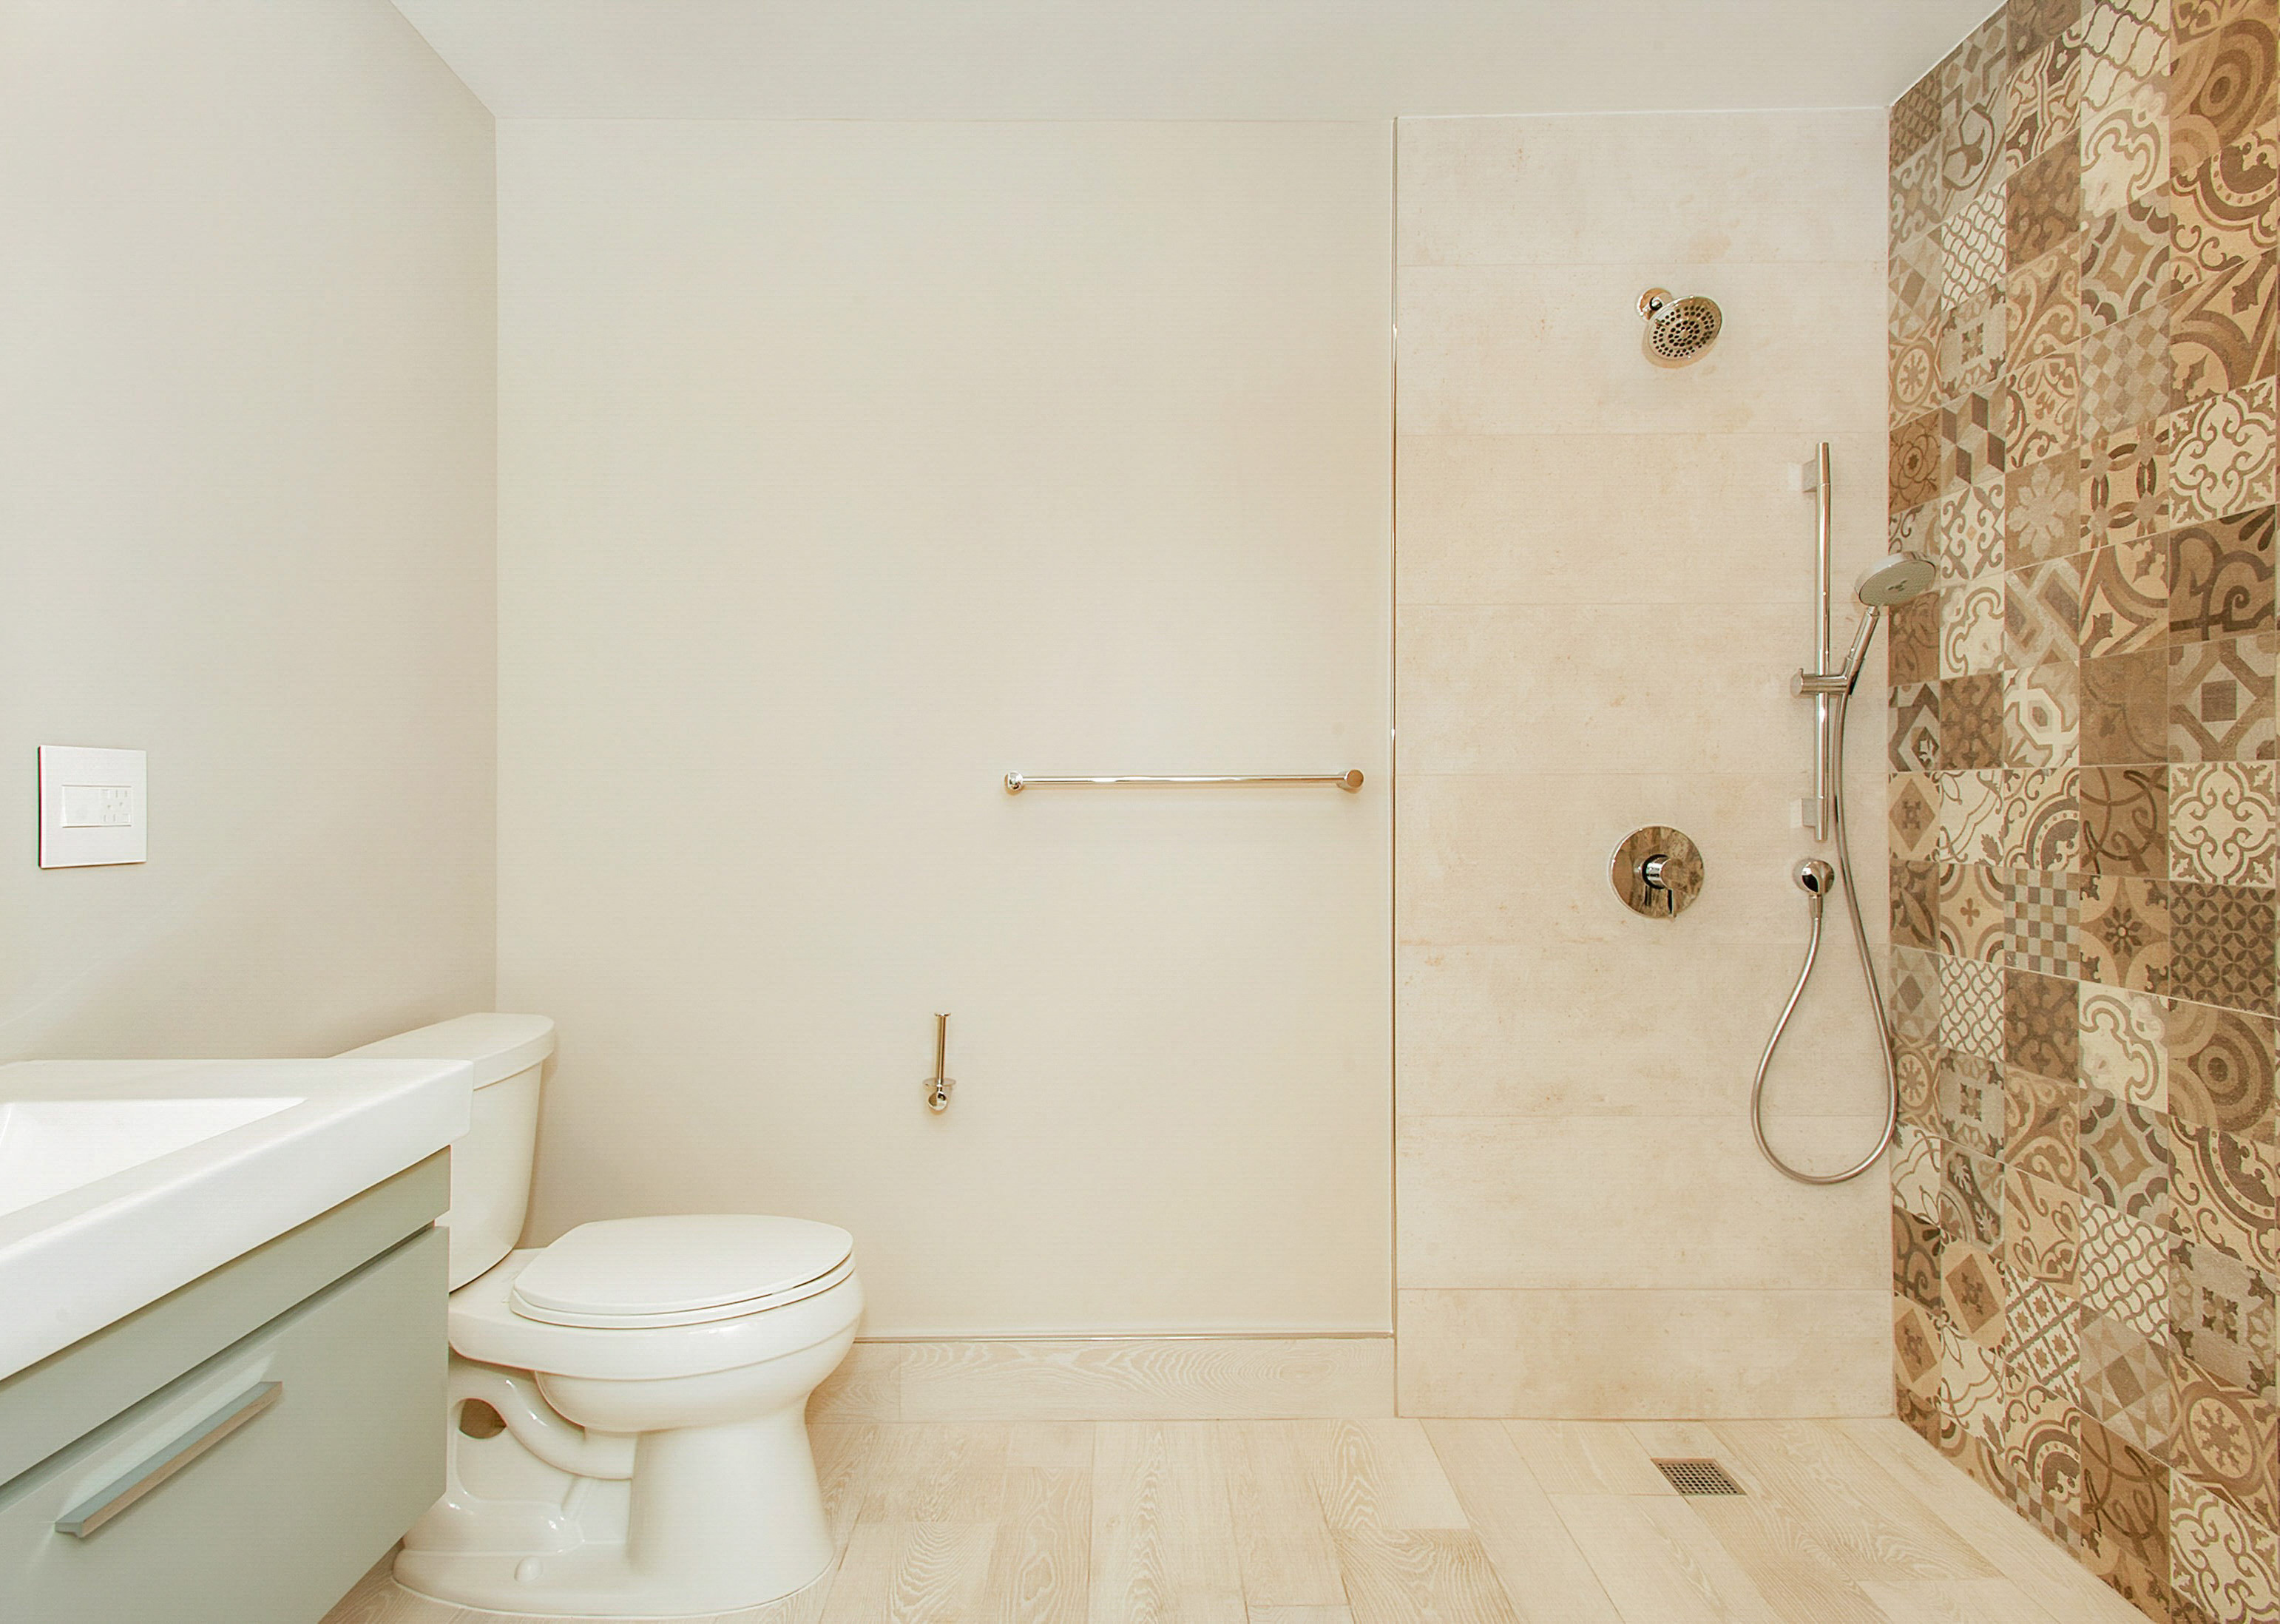 Kitchen, living room and bathroom renovations & fireplace refacing ...